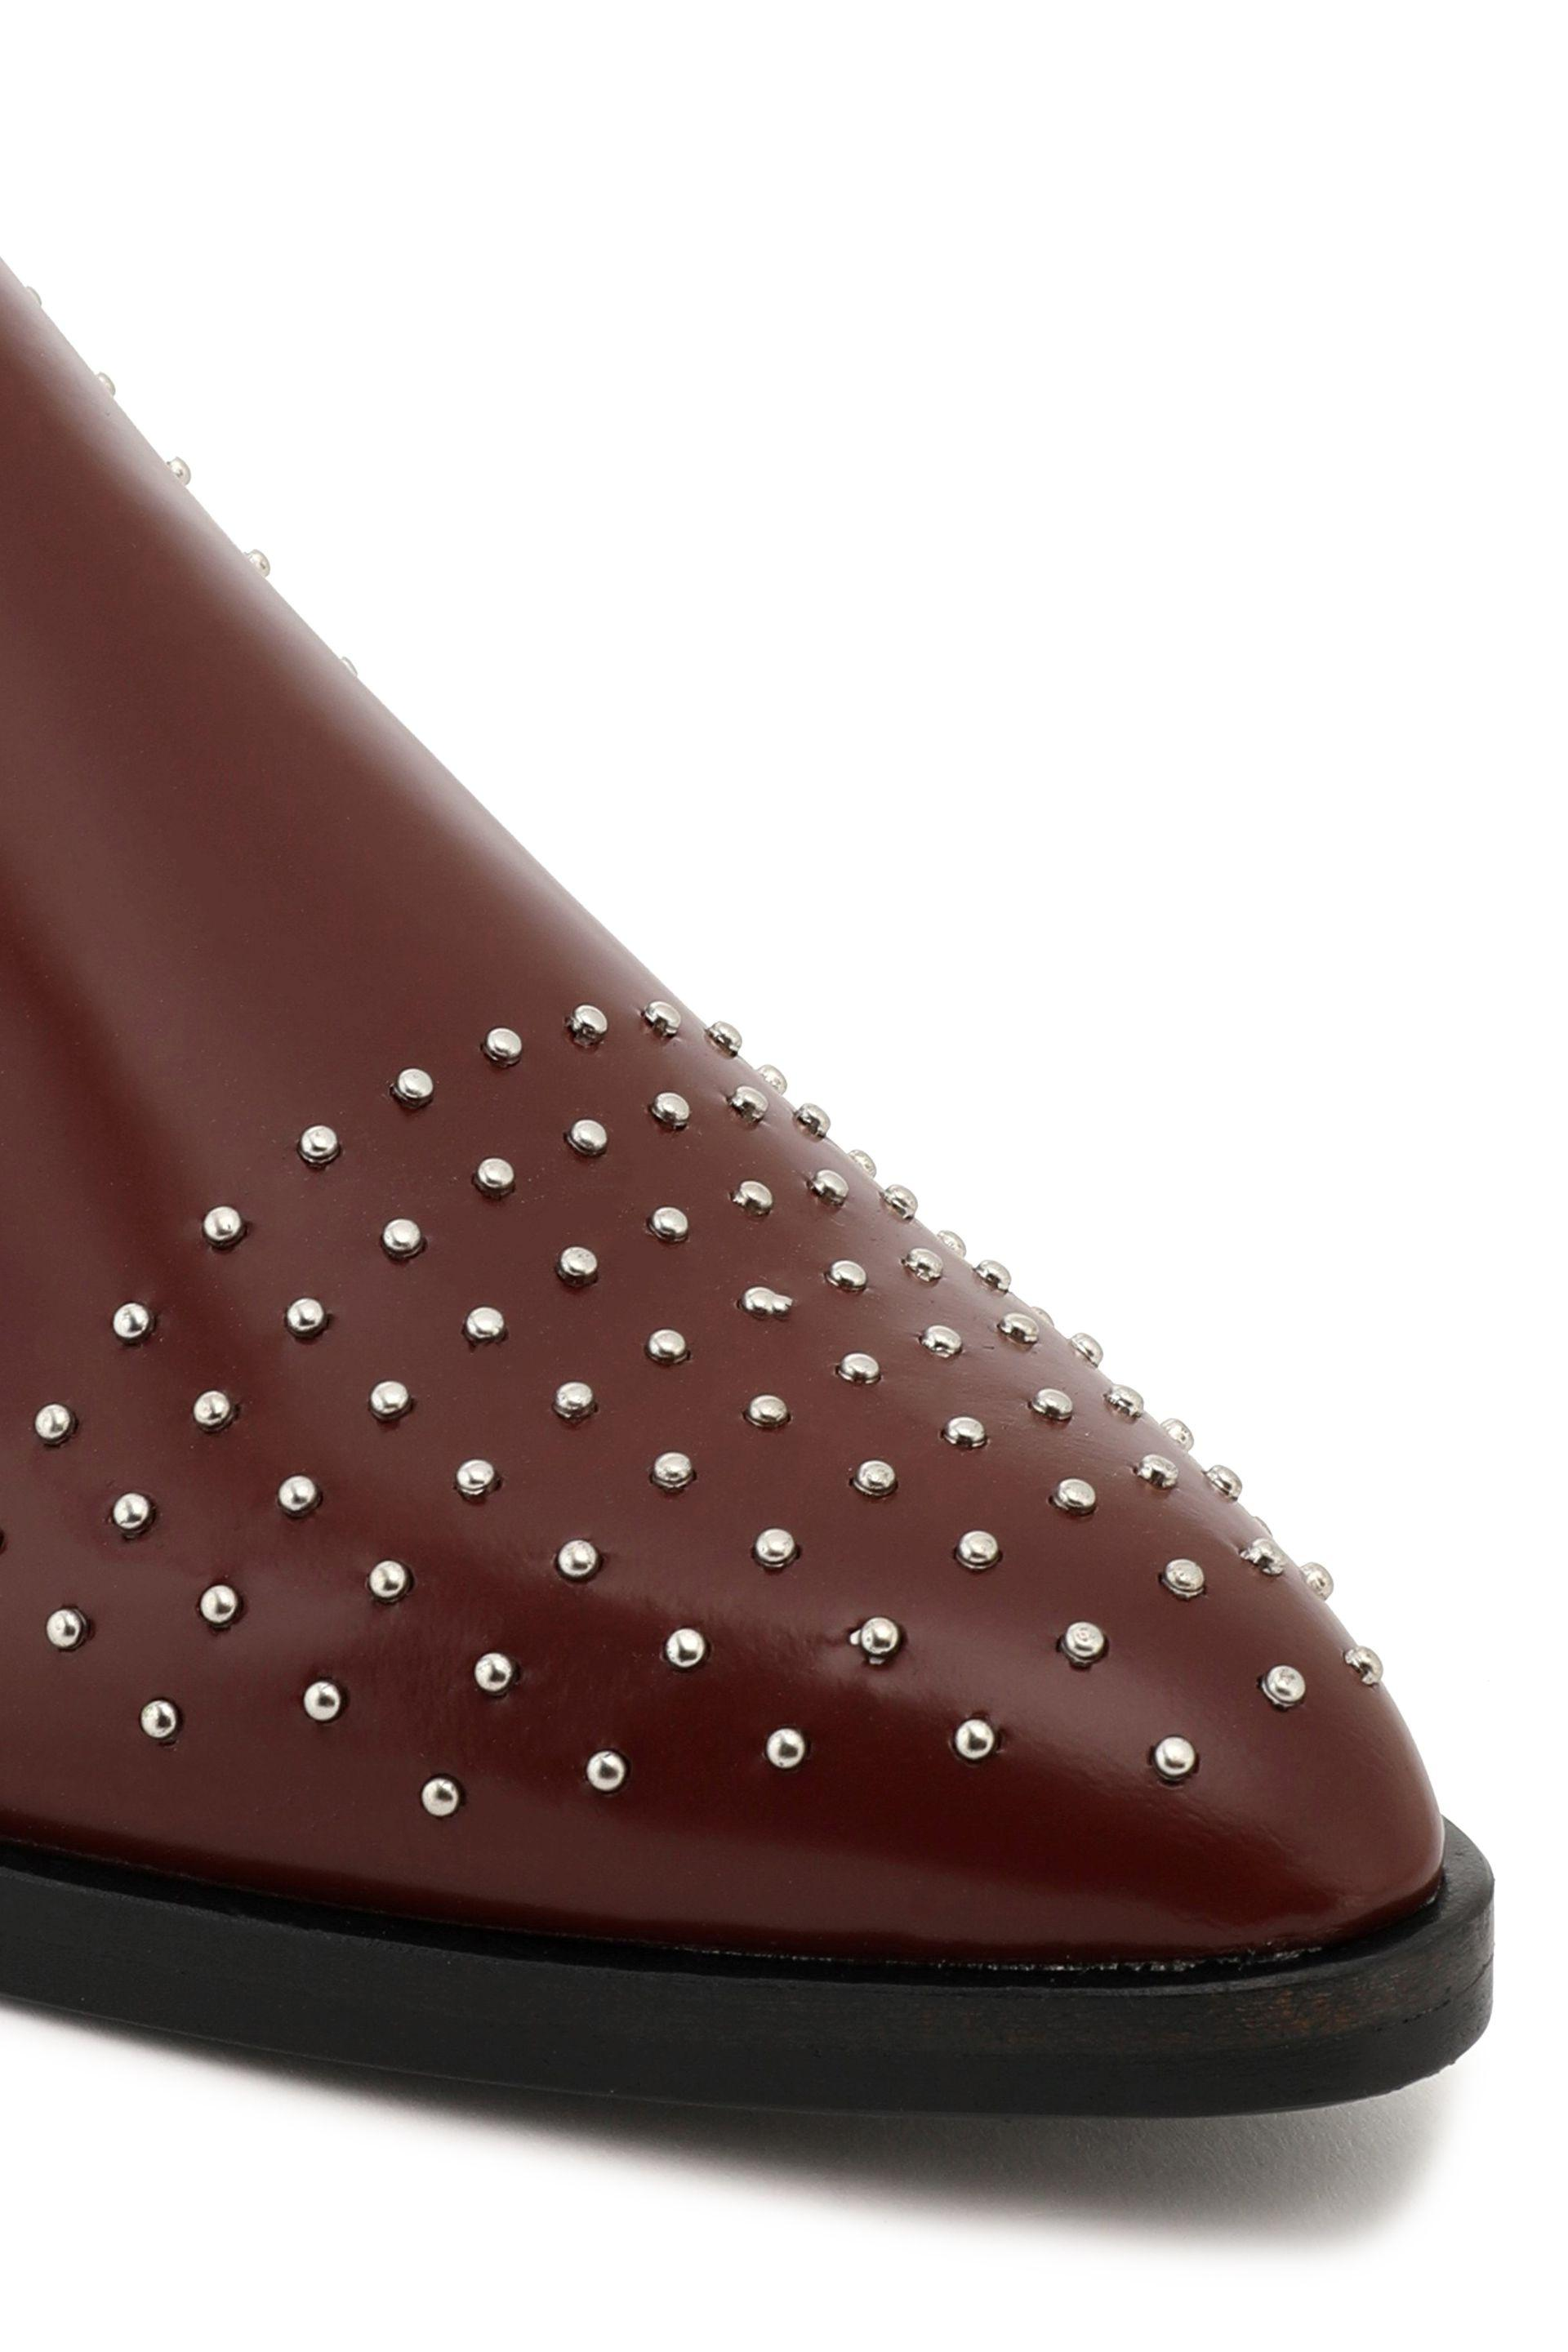 Sigerson Morrison Woman Studded Patent Leather Slippers